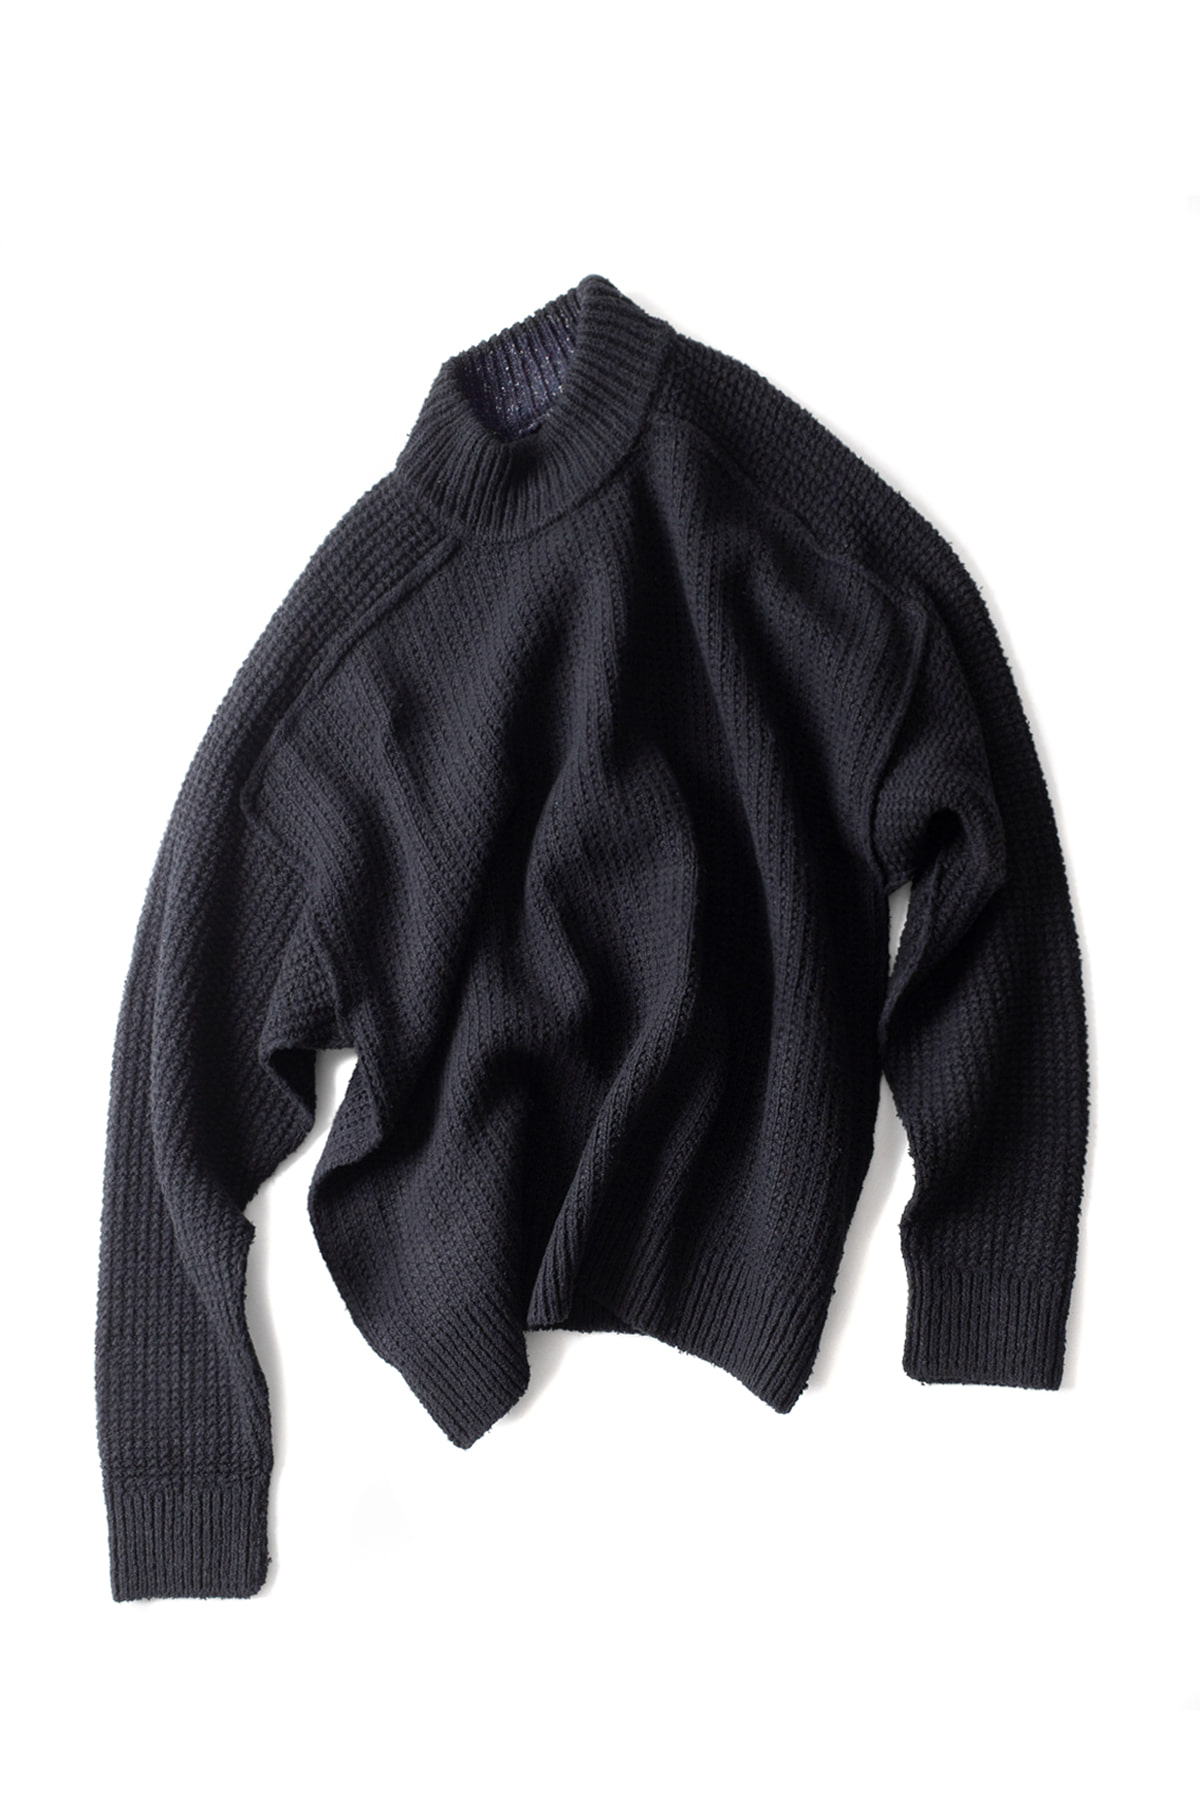 WRAPINKNOT : Raw Silk Reversible Knit (Black)